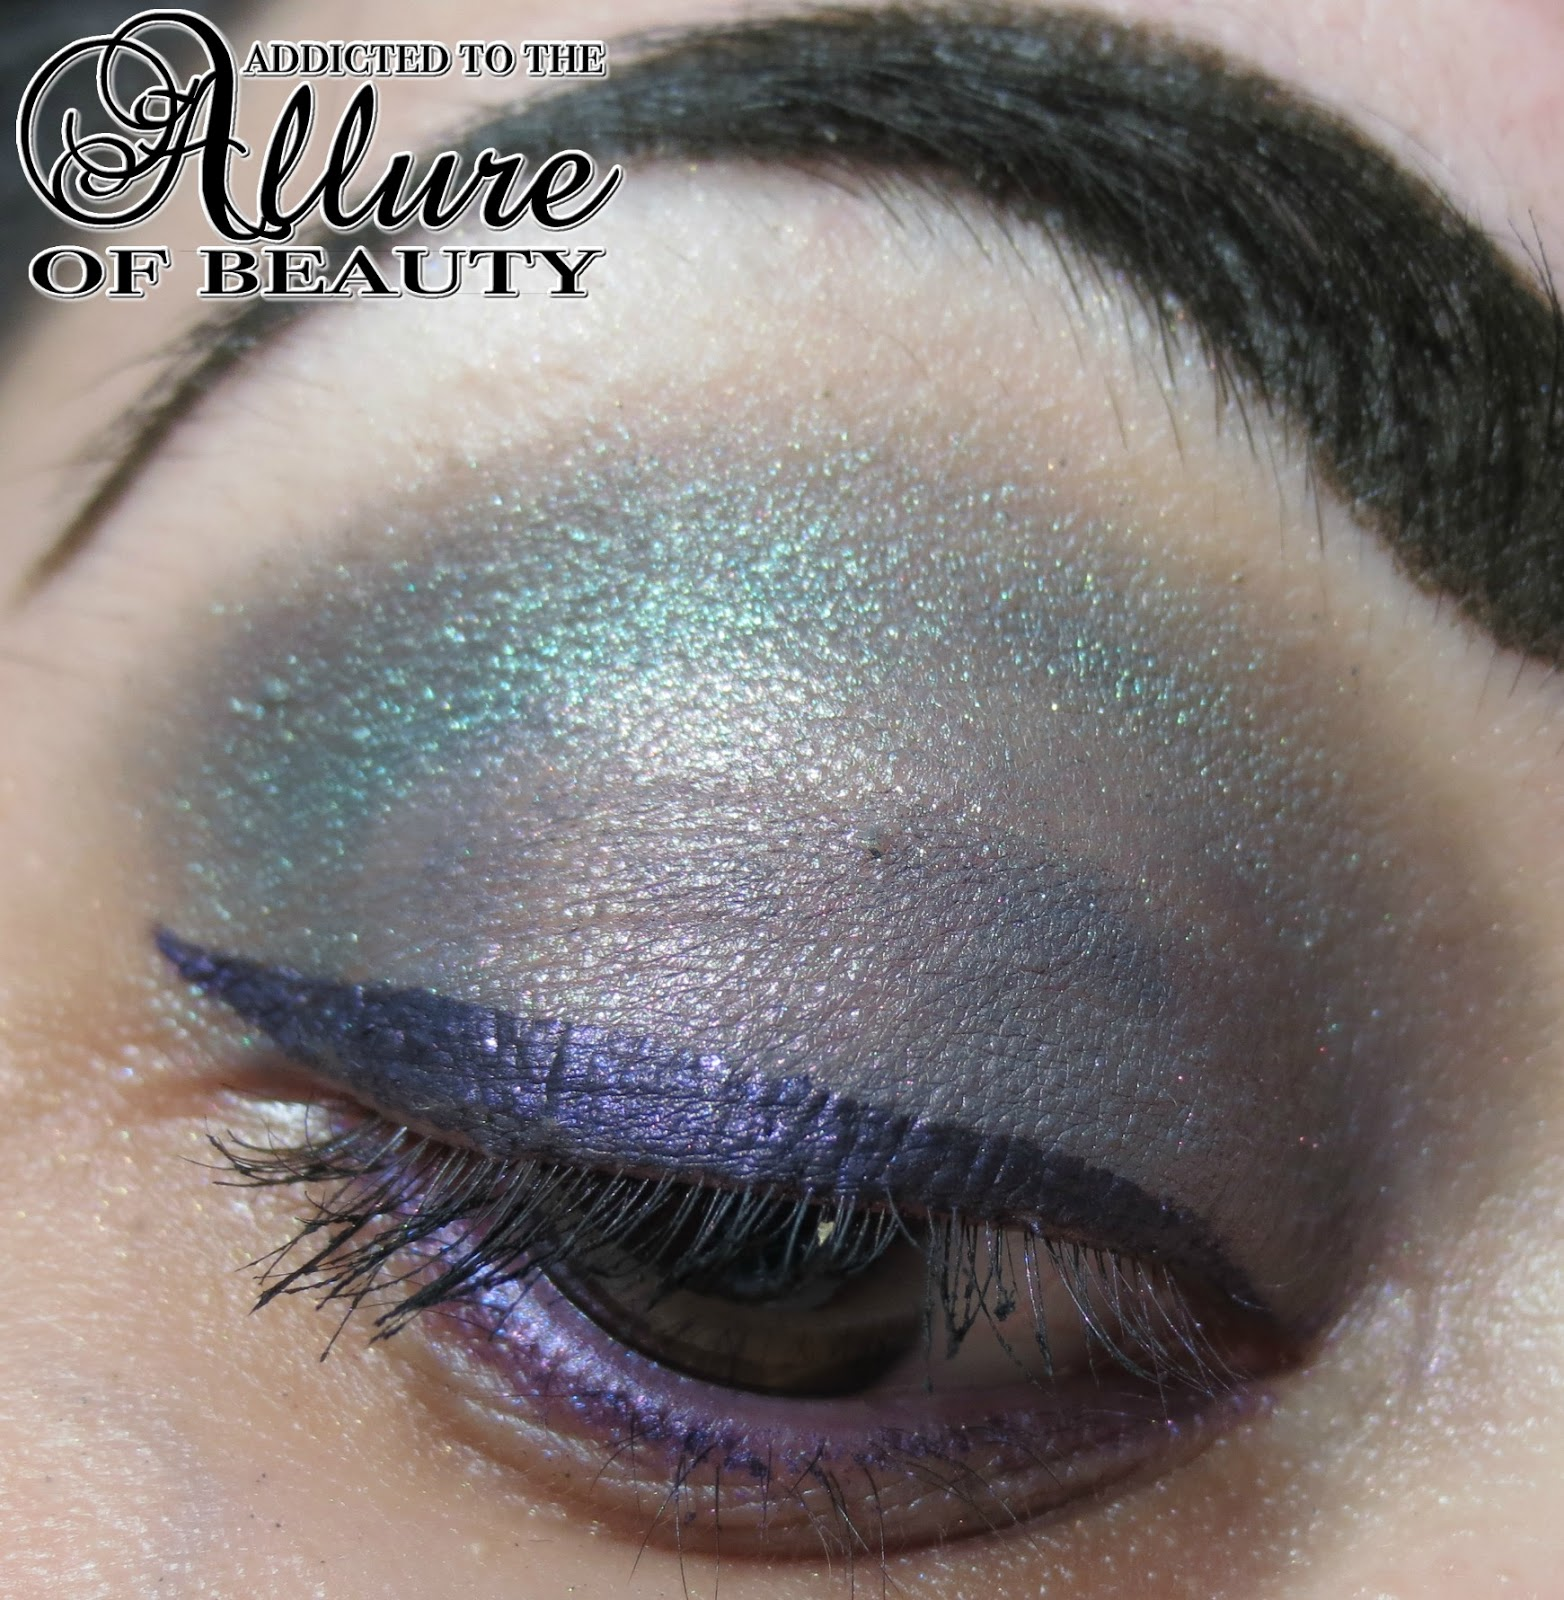 Now Kiss And Makeup: Addicted To The Allure Of Beauty...: See Me Now, Kiss Me